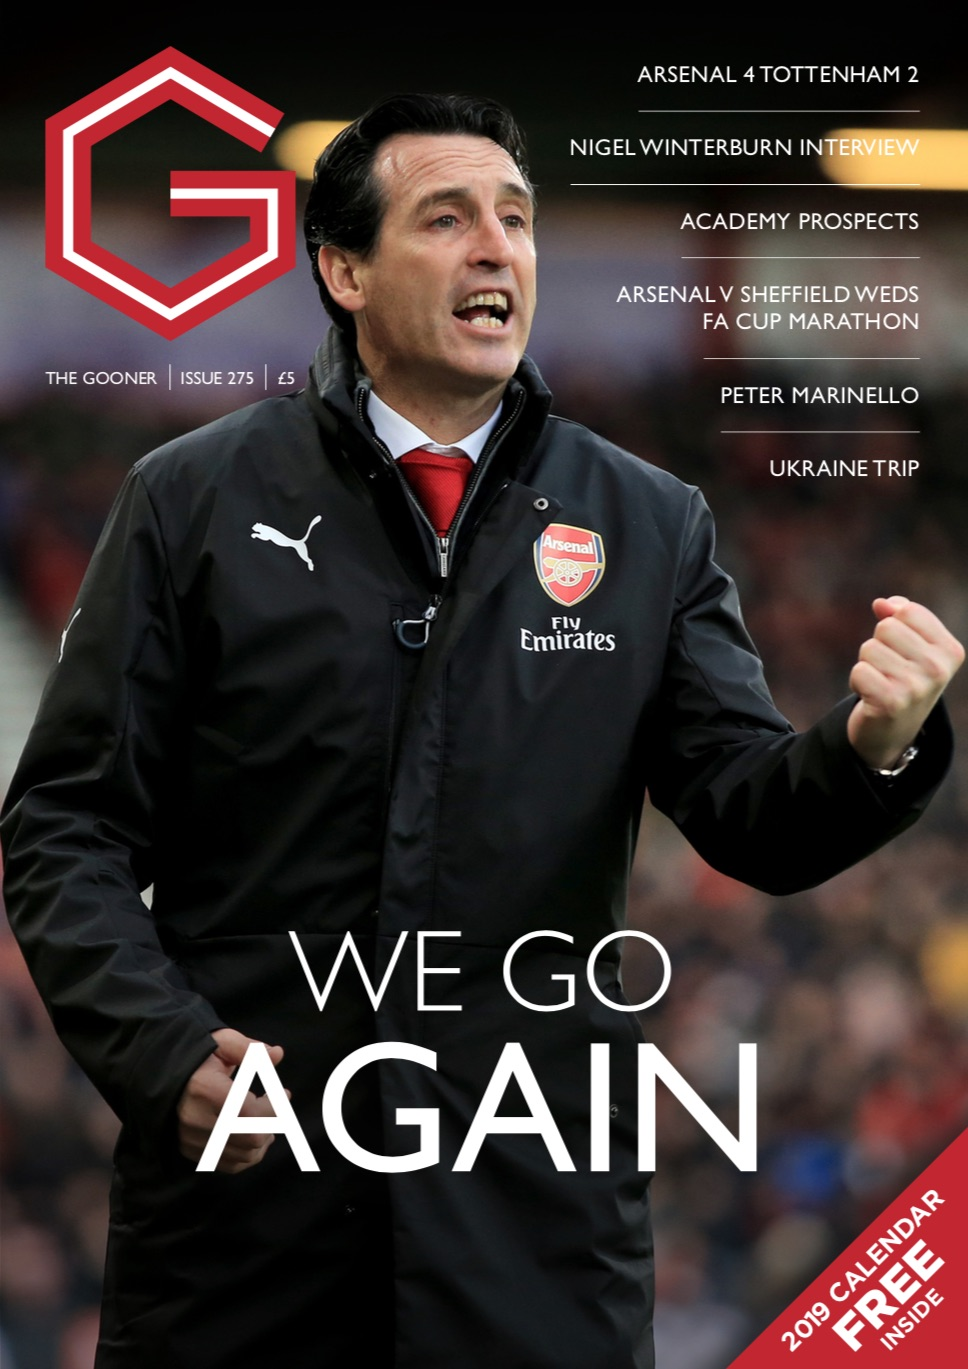 The Gooner Issue 275 (UK addresses)